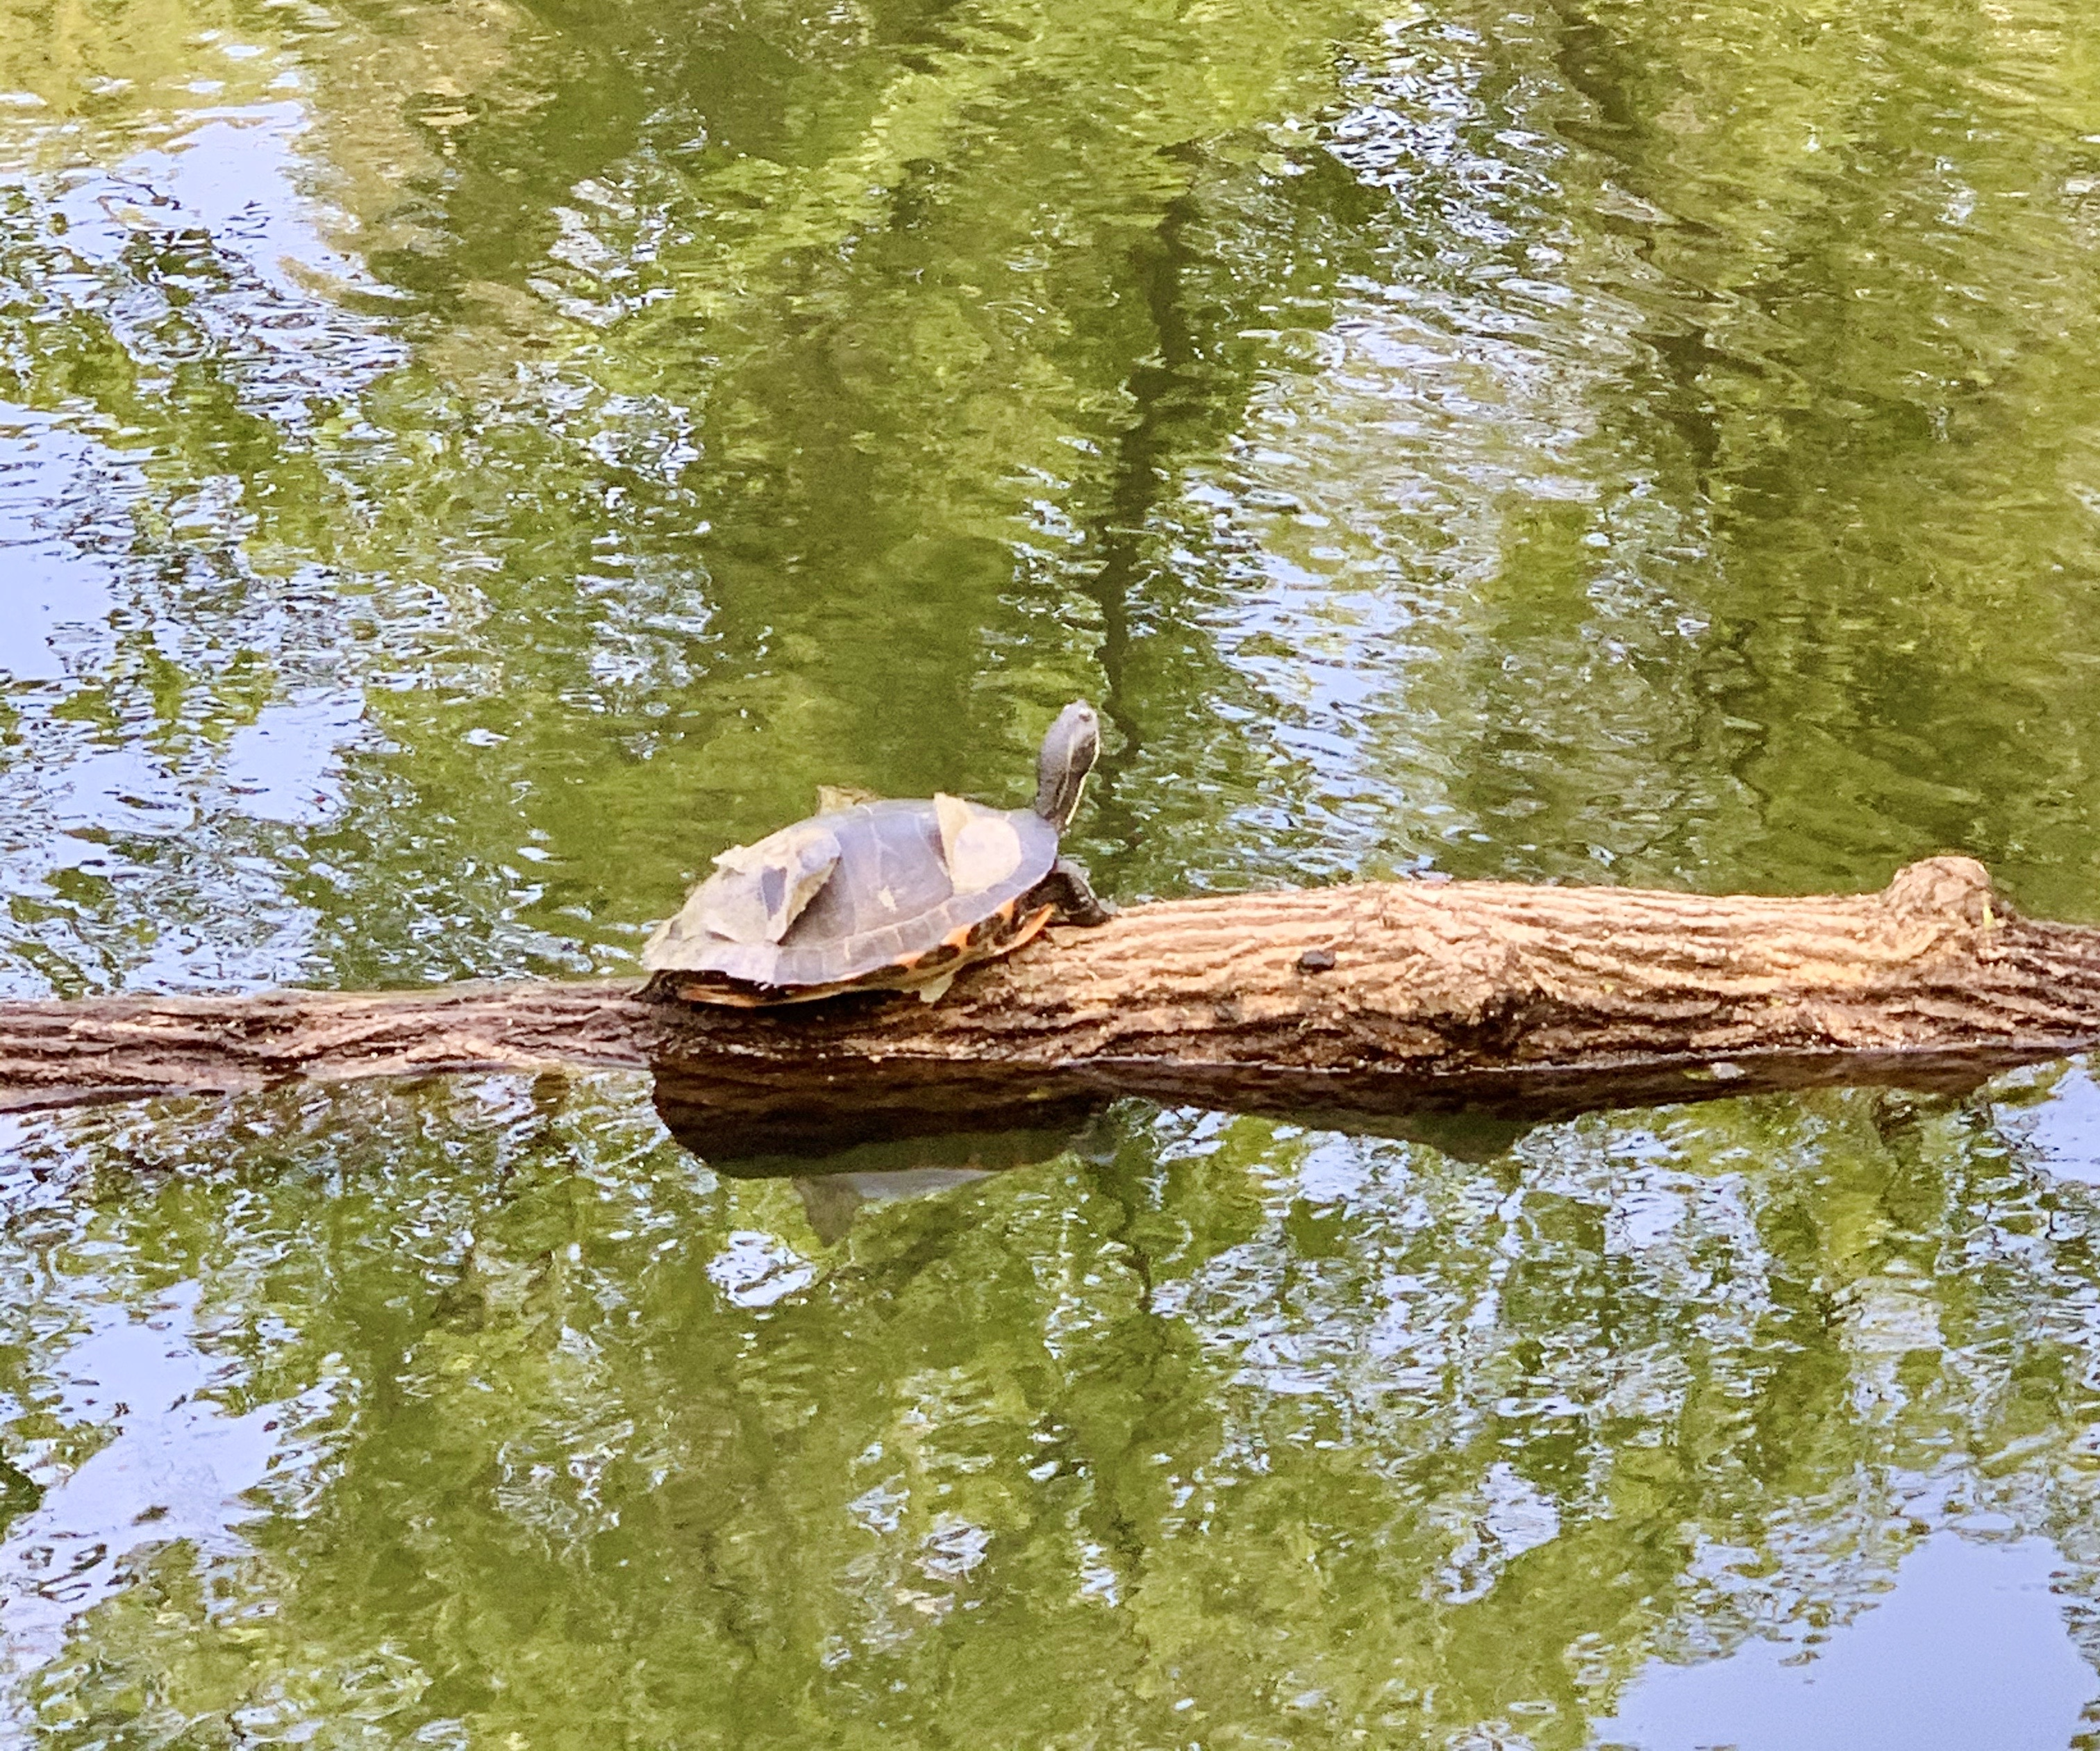 Turtle in the lake